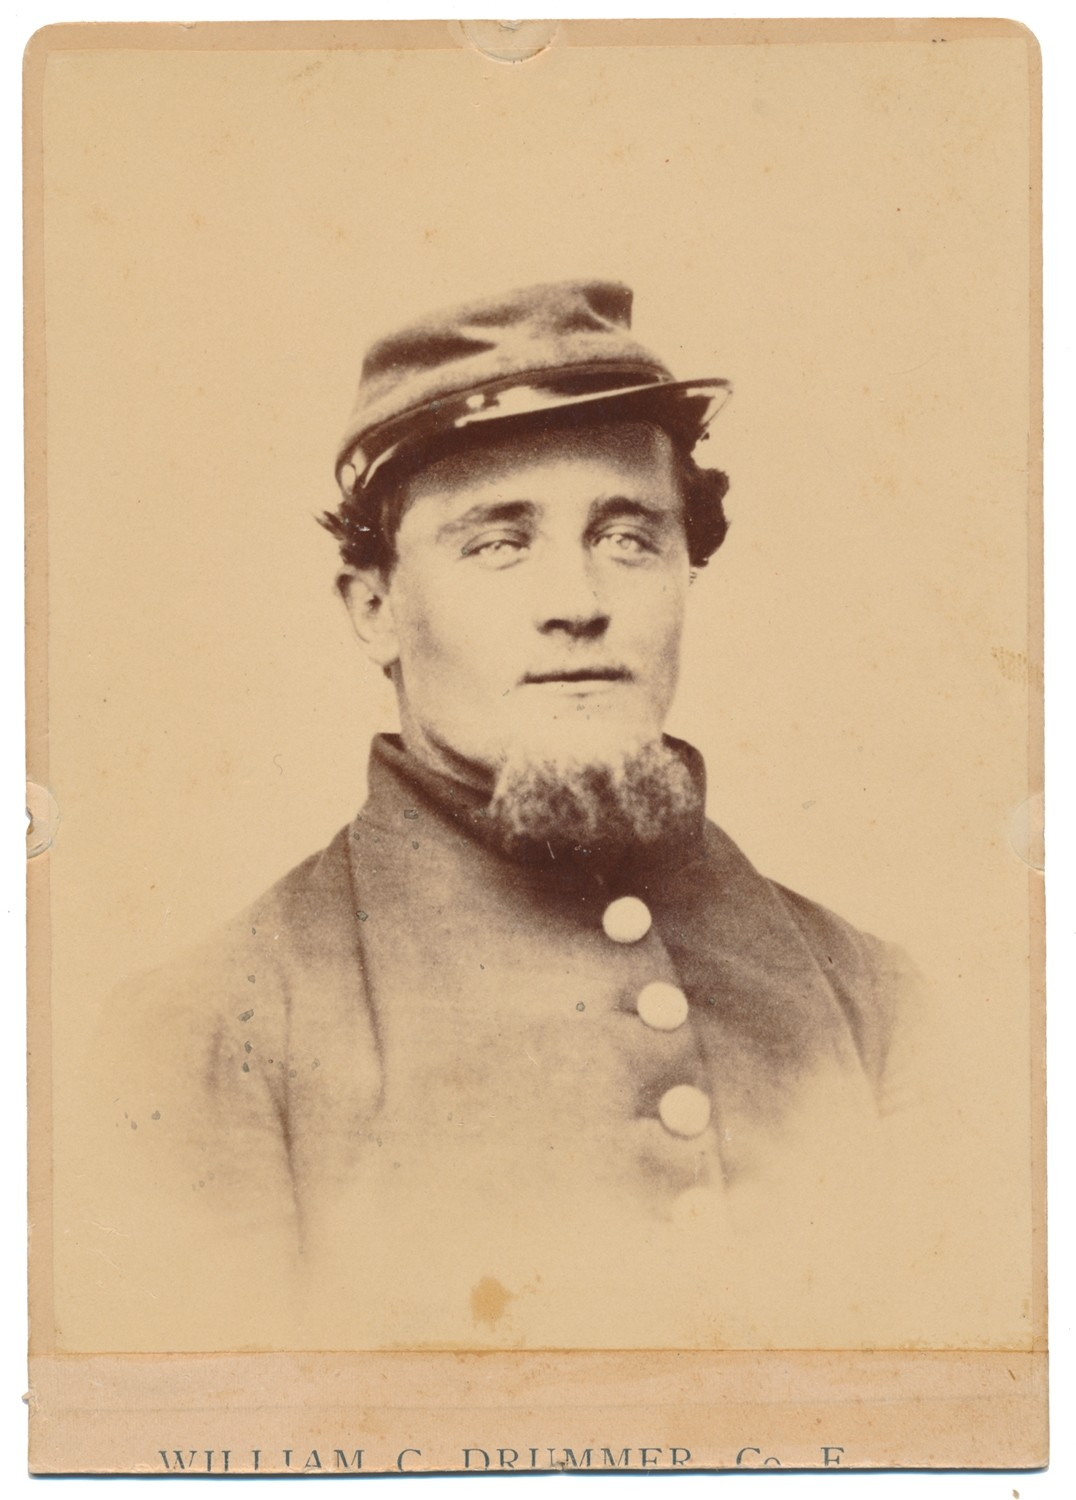 POST-WAR CABINET CARD PHOTOGRAPH OF WILLIAM C. DRUMMER OF THE 2nd NEW HAMPSHIRE WHO WENT MISSING IN ACTION JULY 2nd AT GETTYSBURG